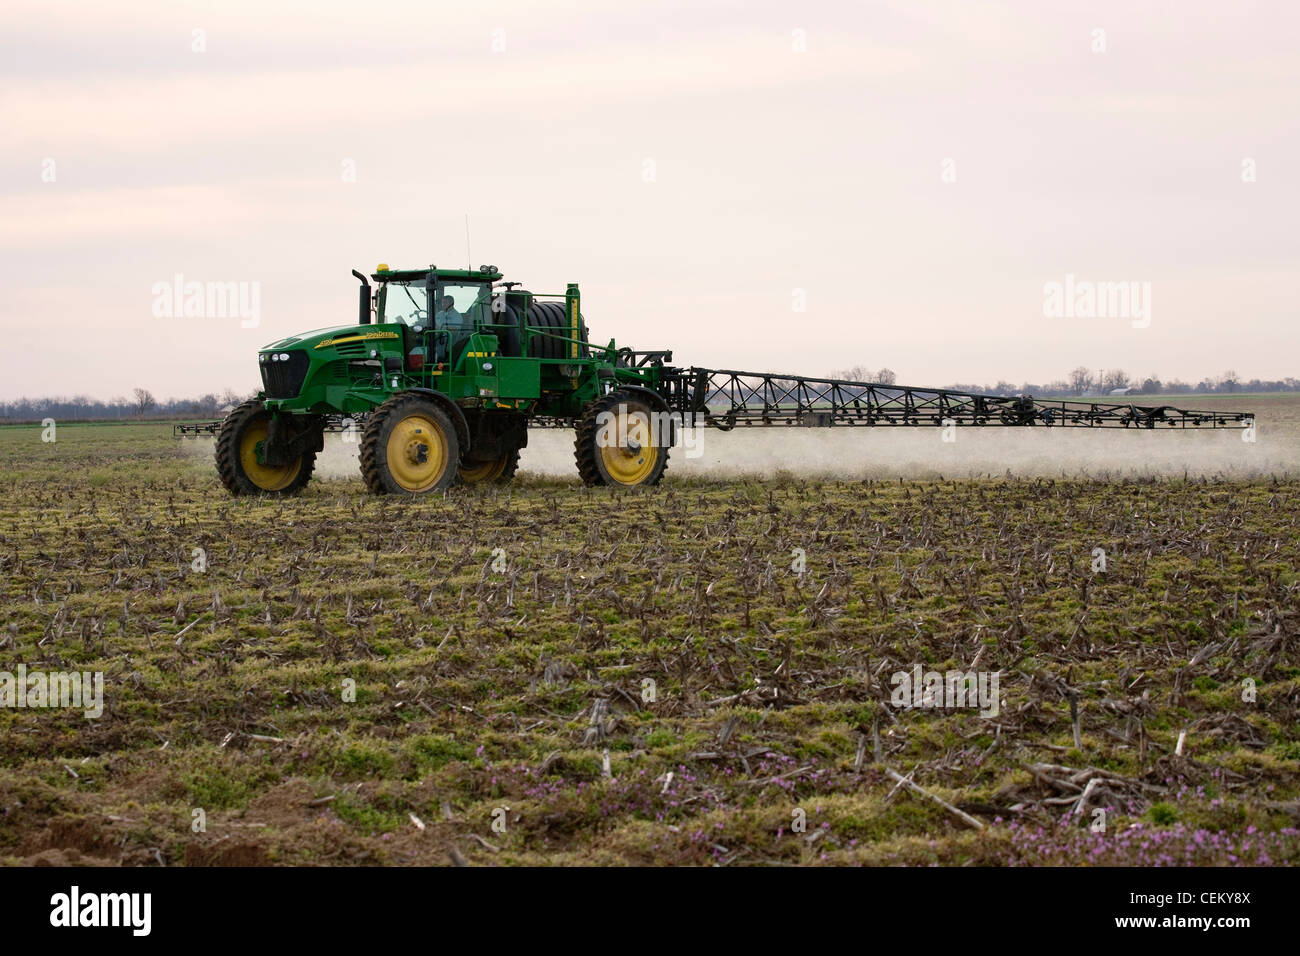 A John Deere sprayer applies pre-plant burndown herbicide in late Winter to a field that will be no-till planted - Stock Image